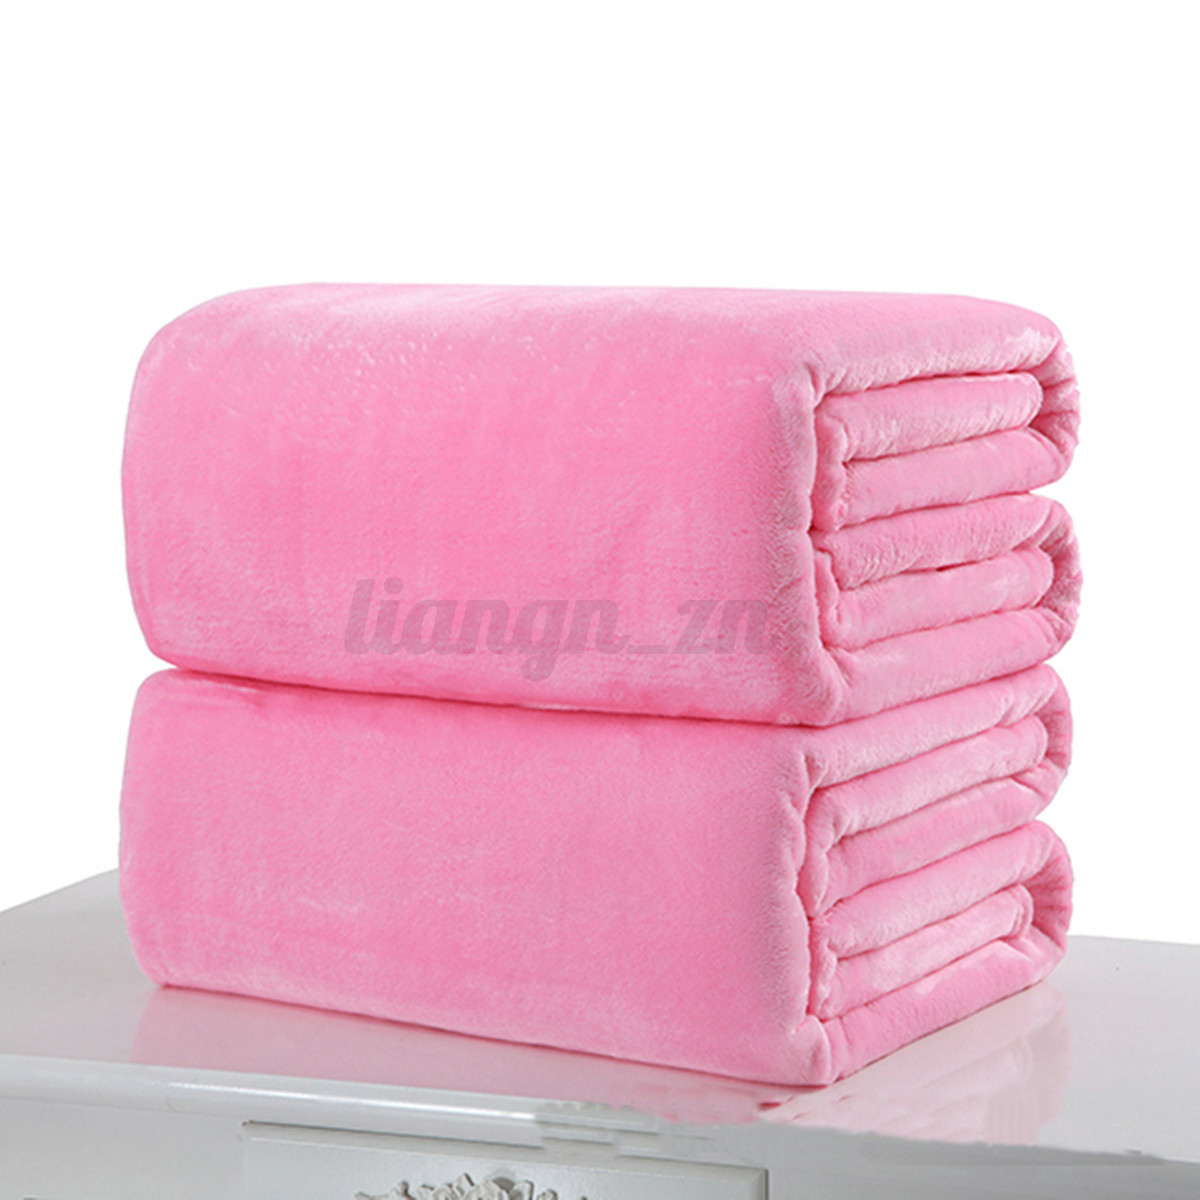 6 tailles doux couverture chaud corail plaid flanelle canap tapis polaire hiver ebay. Black Bedroom Furniture Sets. Home Design Ideas